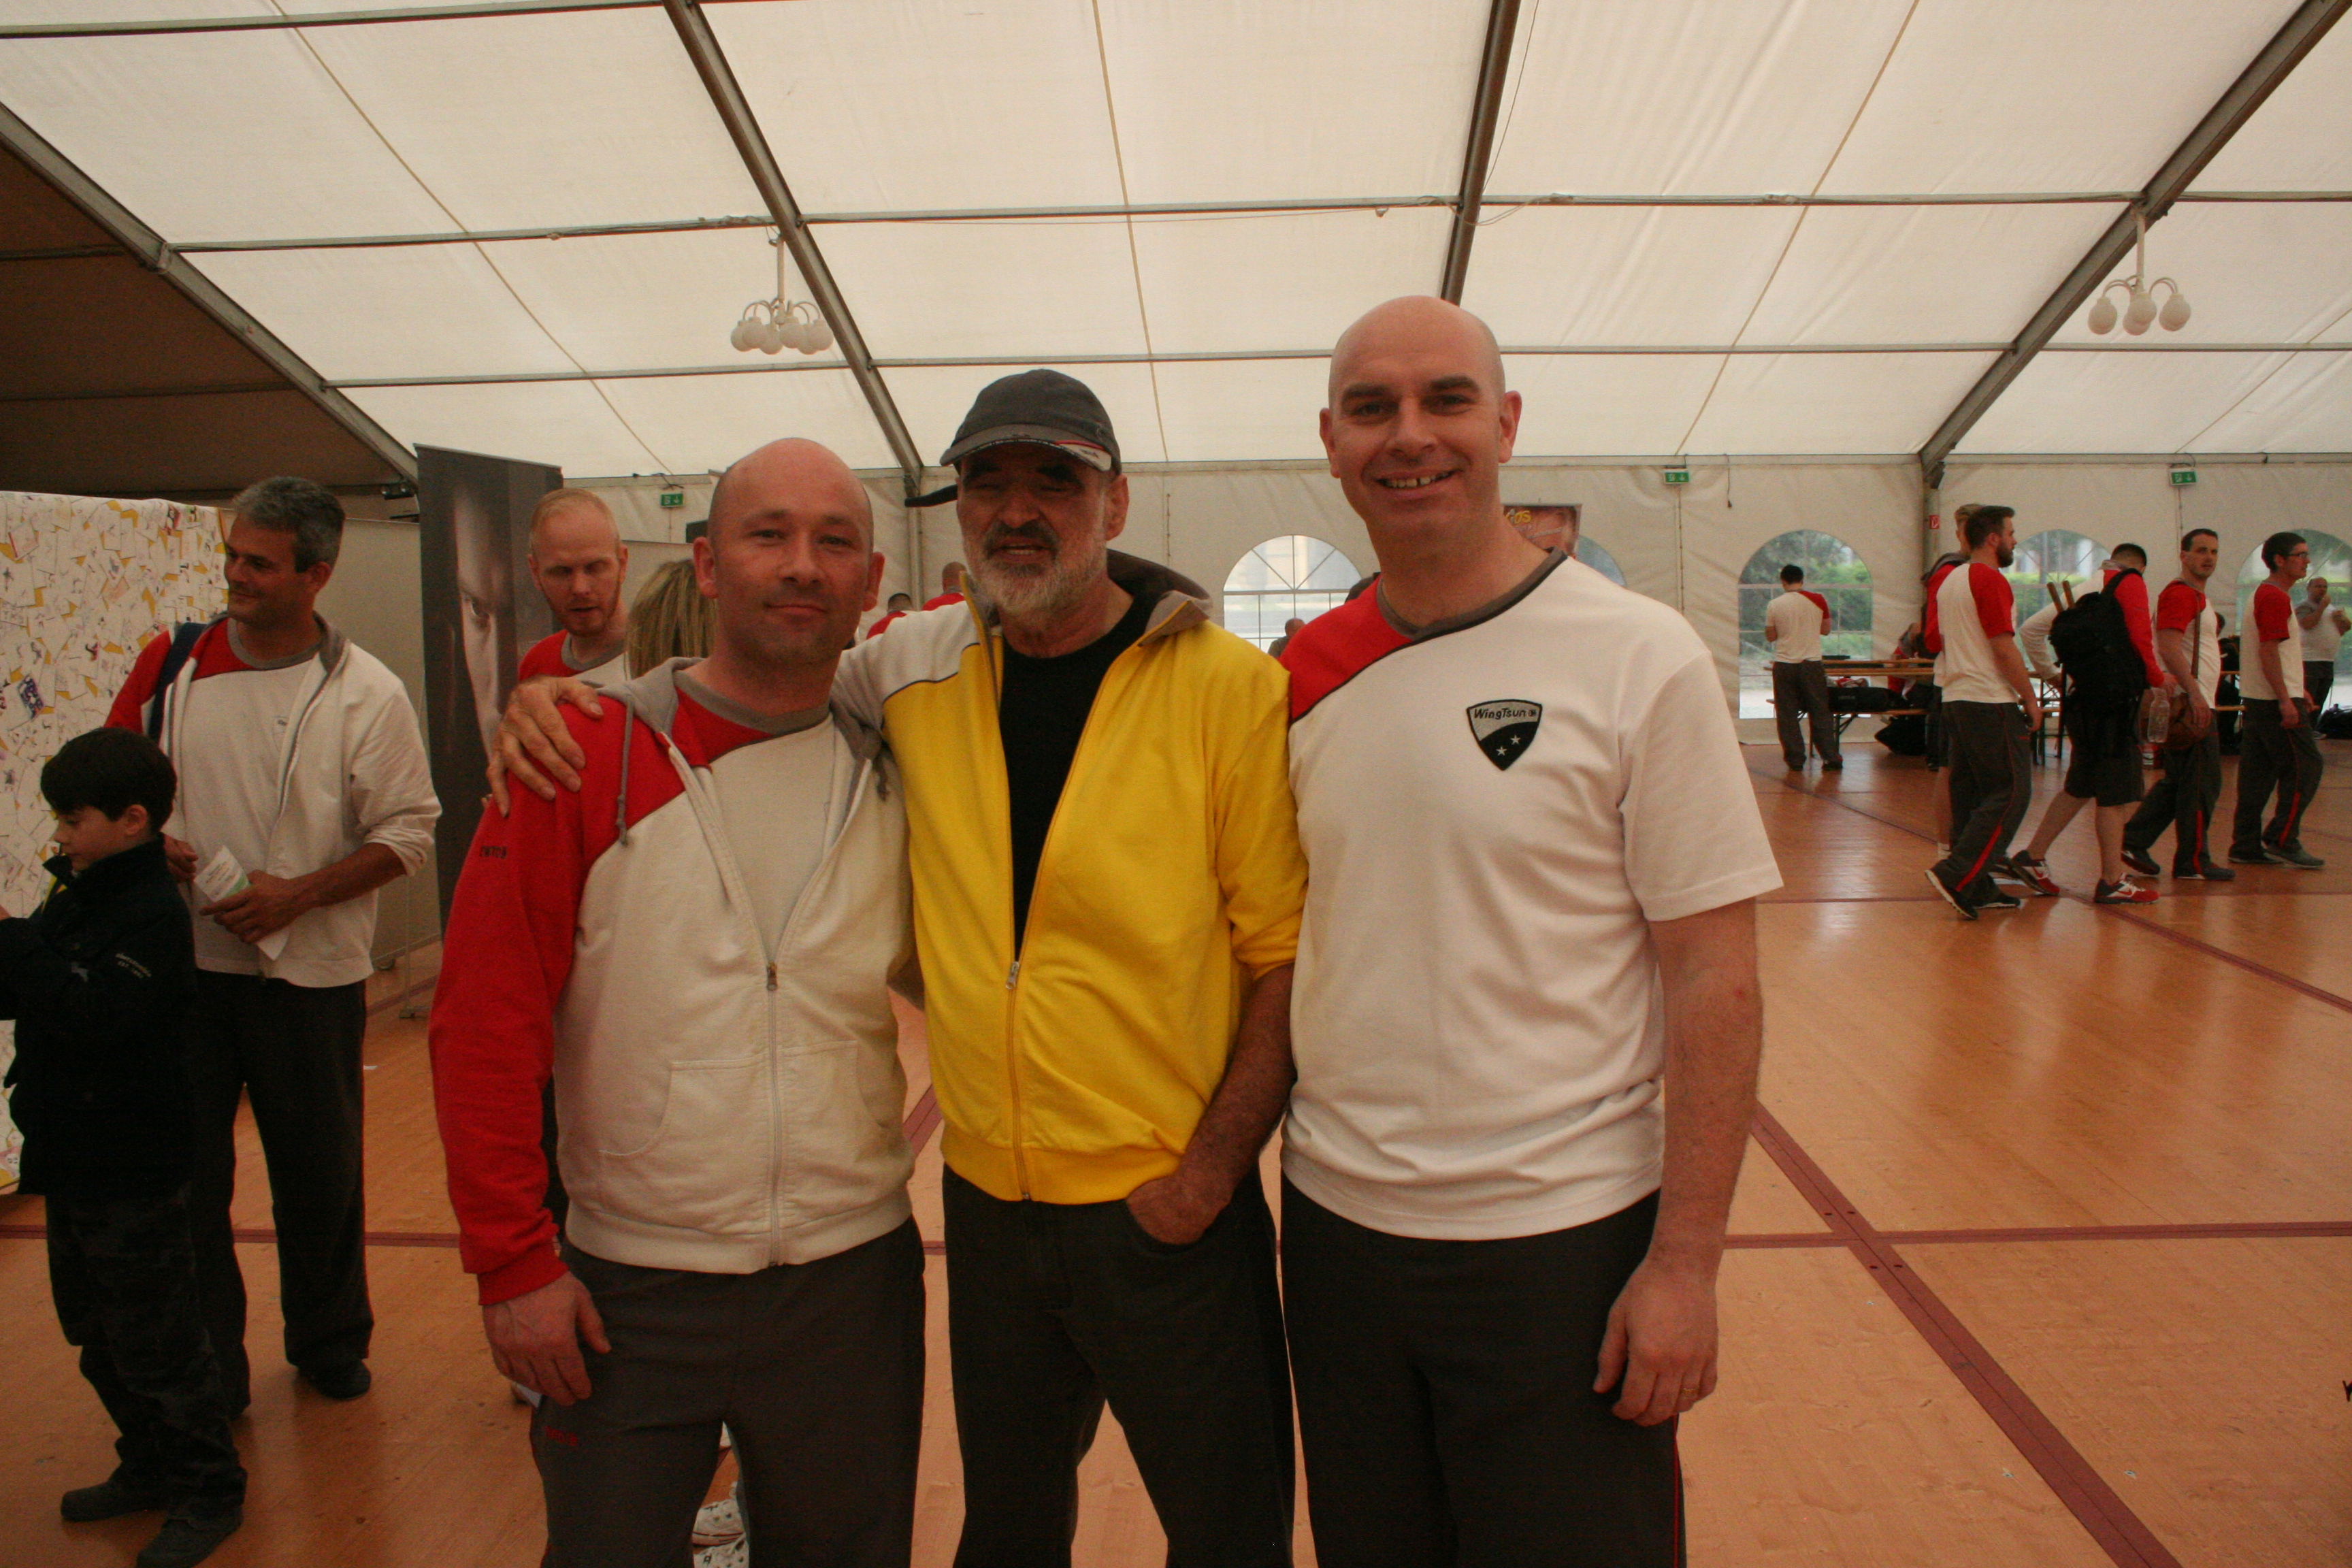 Rory and Daragh with Grandmaster Kernspecht